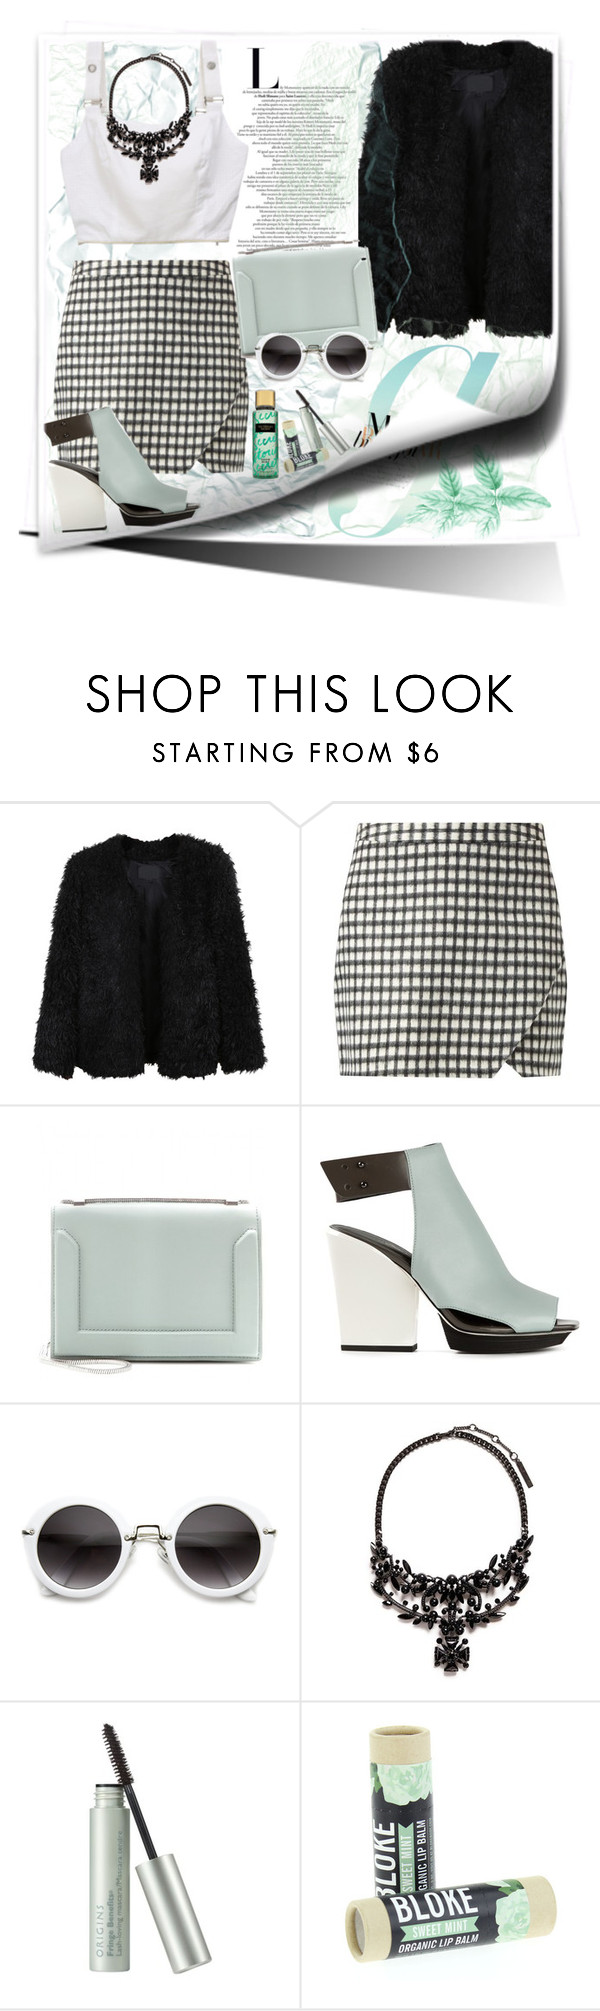 """""""What To Wear This Morning"""" by azarianabilazr ❤ liked on Polyvore featuring LE3NO, rag & bone, 3.1 Phillip Lim, ZeroUV, Givenchy, Origins, Elegant and WhatToWear"""